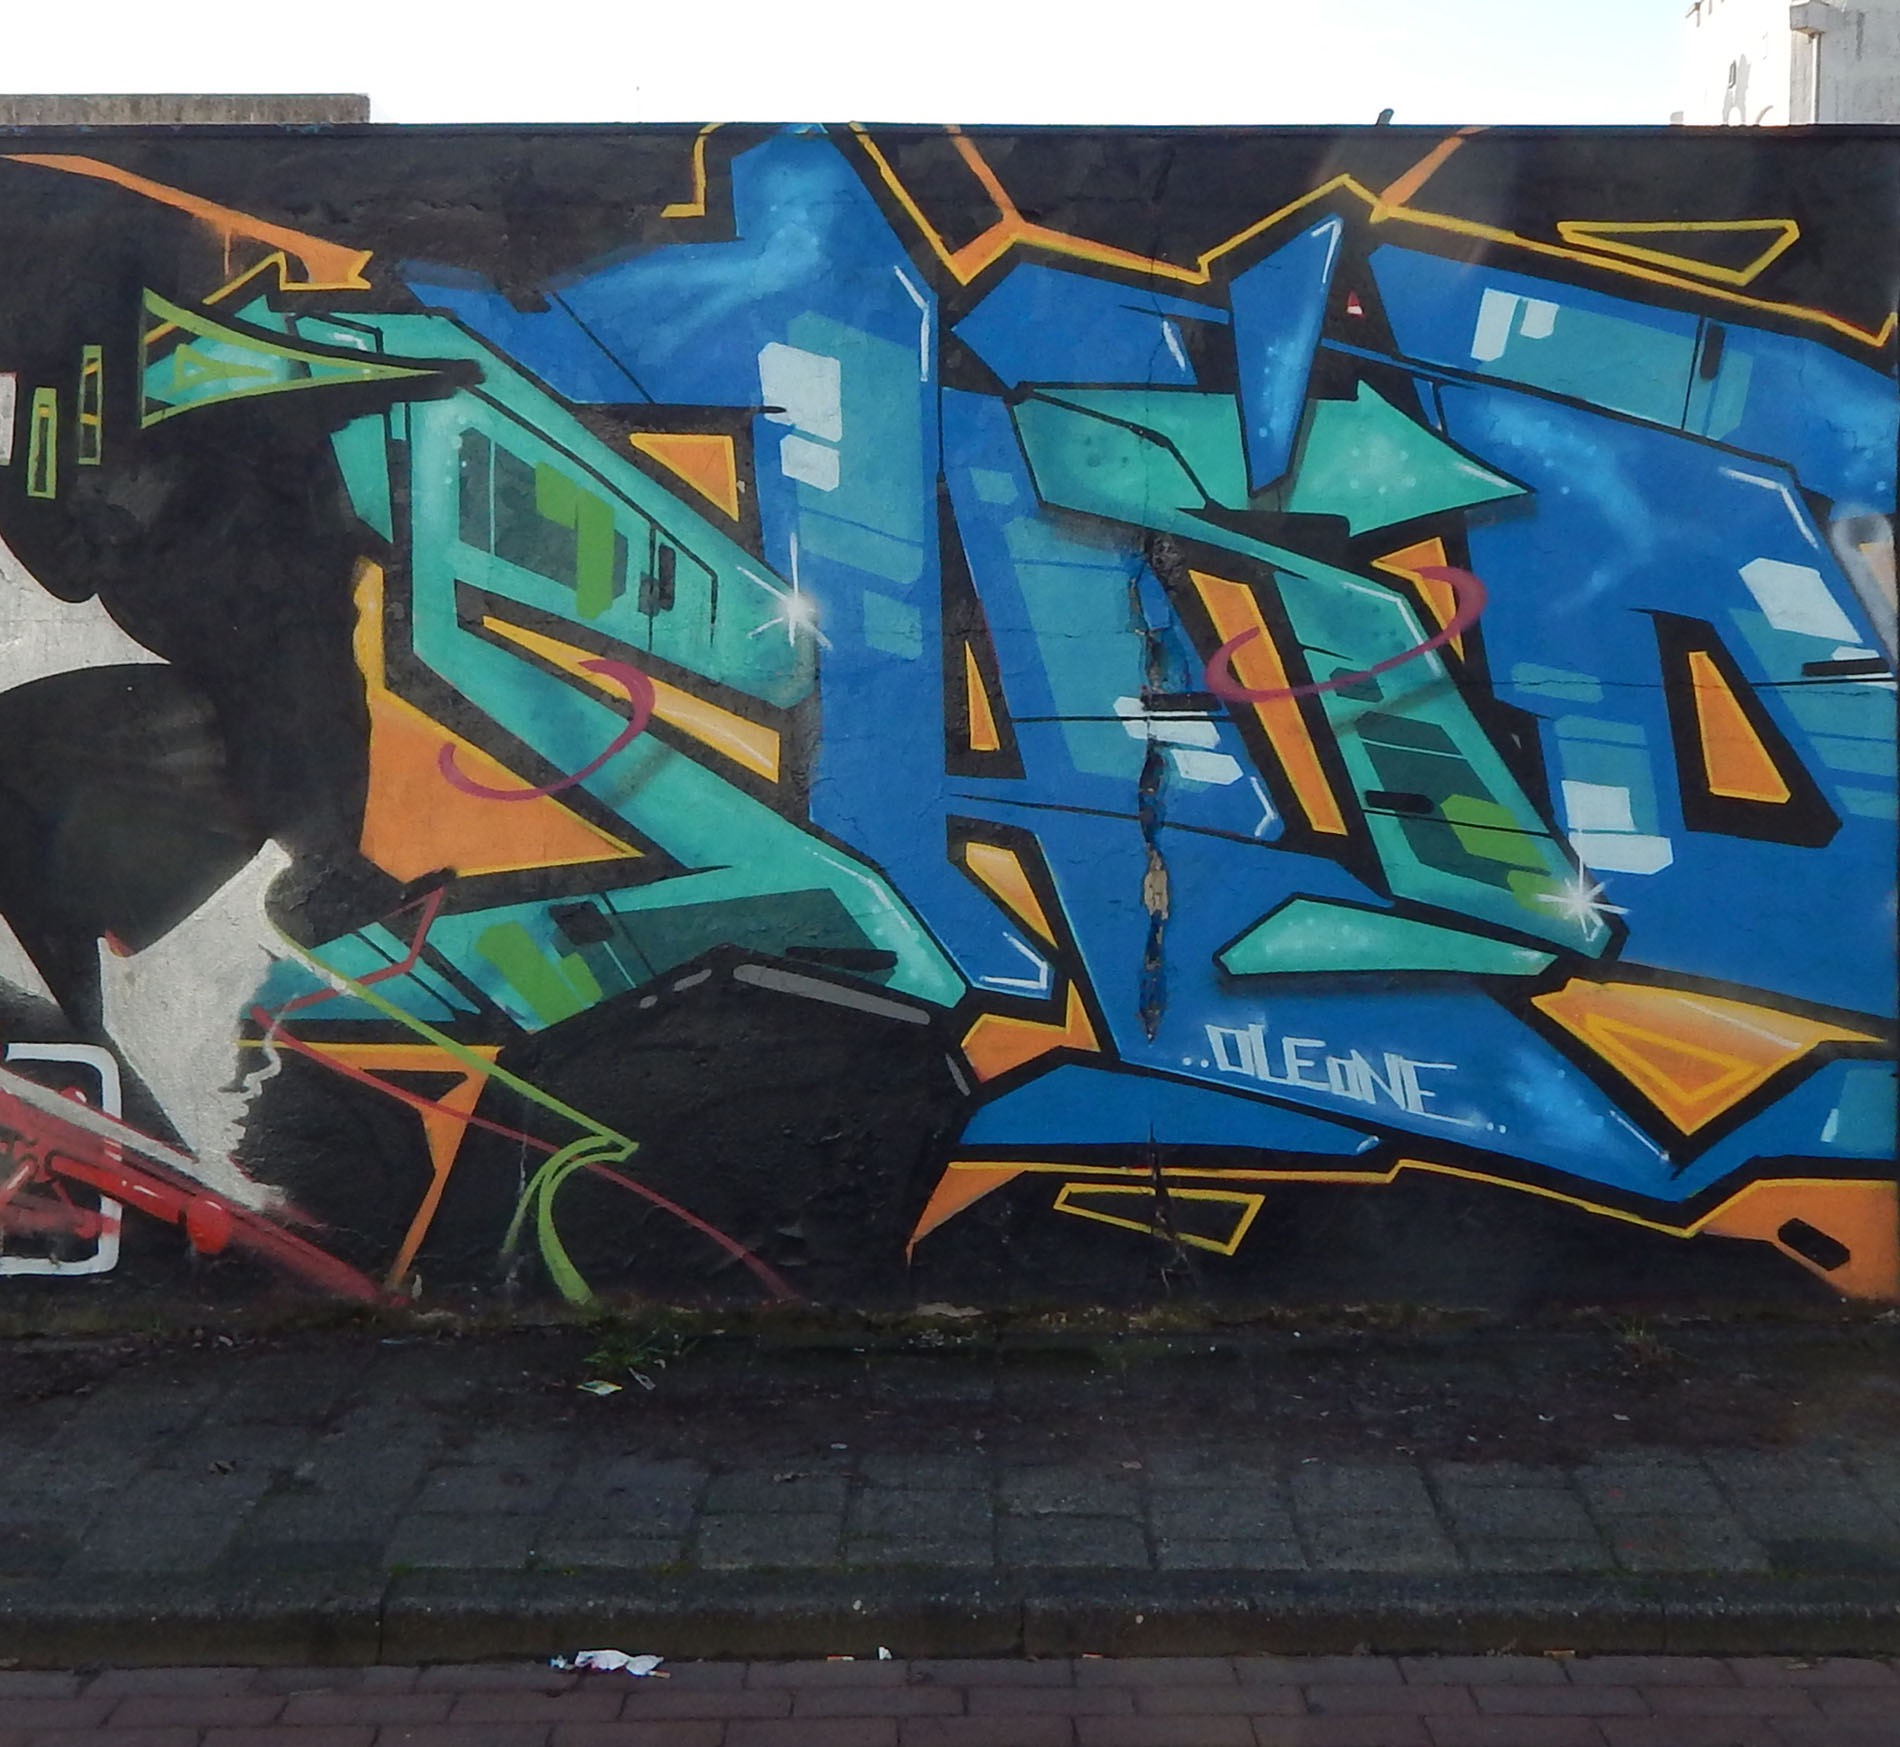 Graffiti_in_Bremen - 041